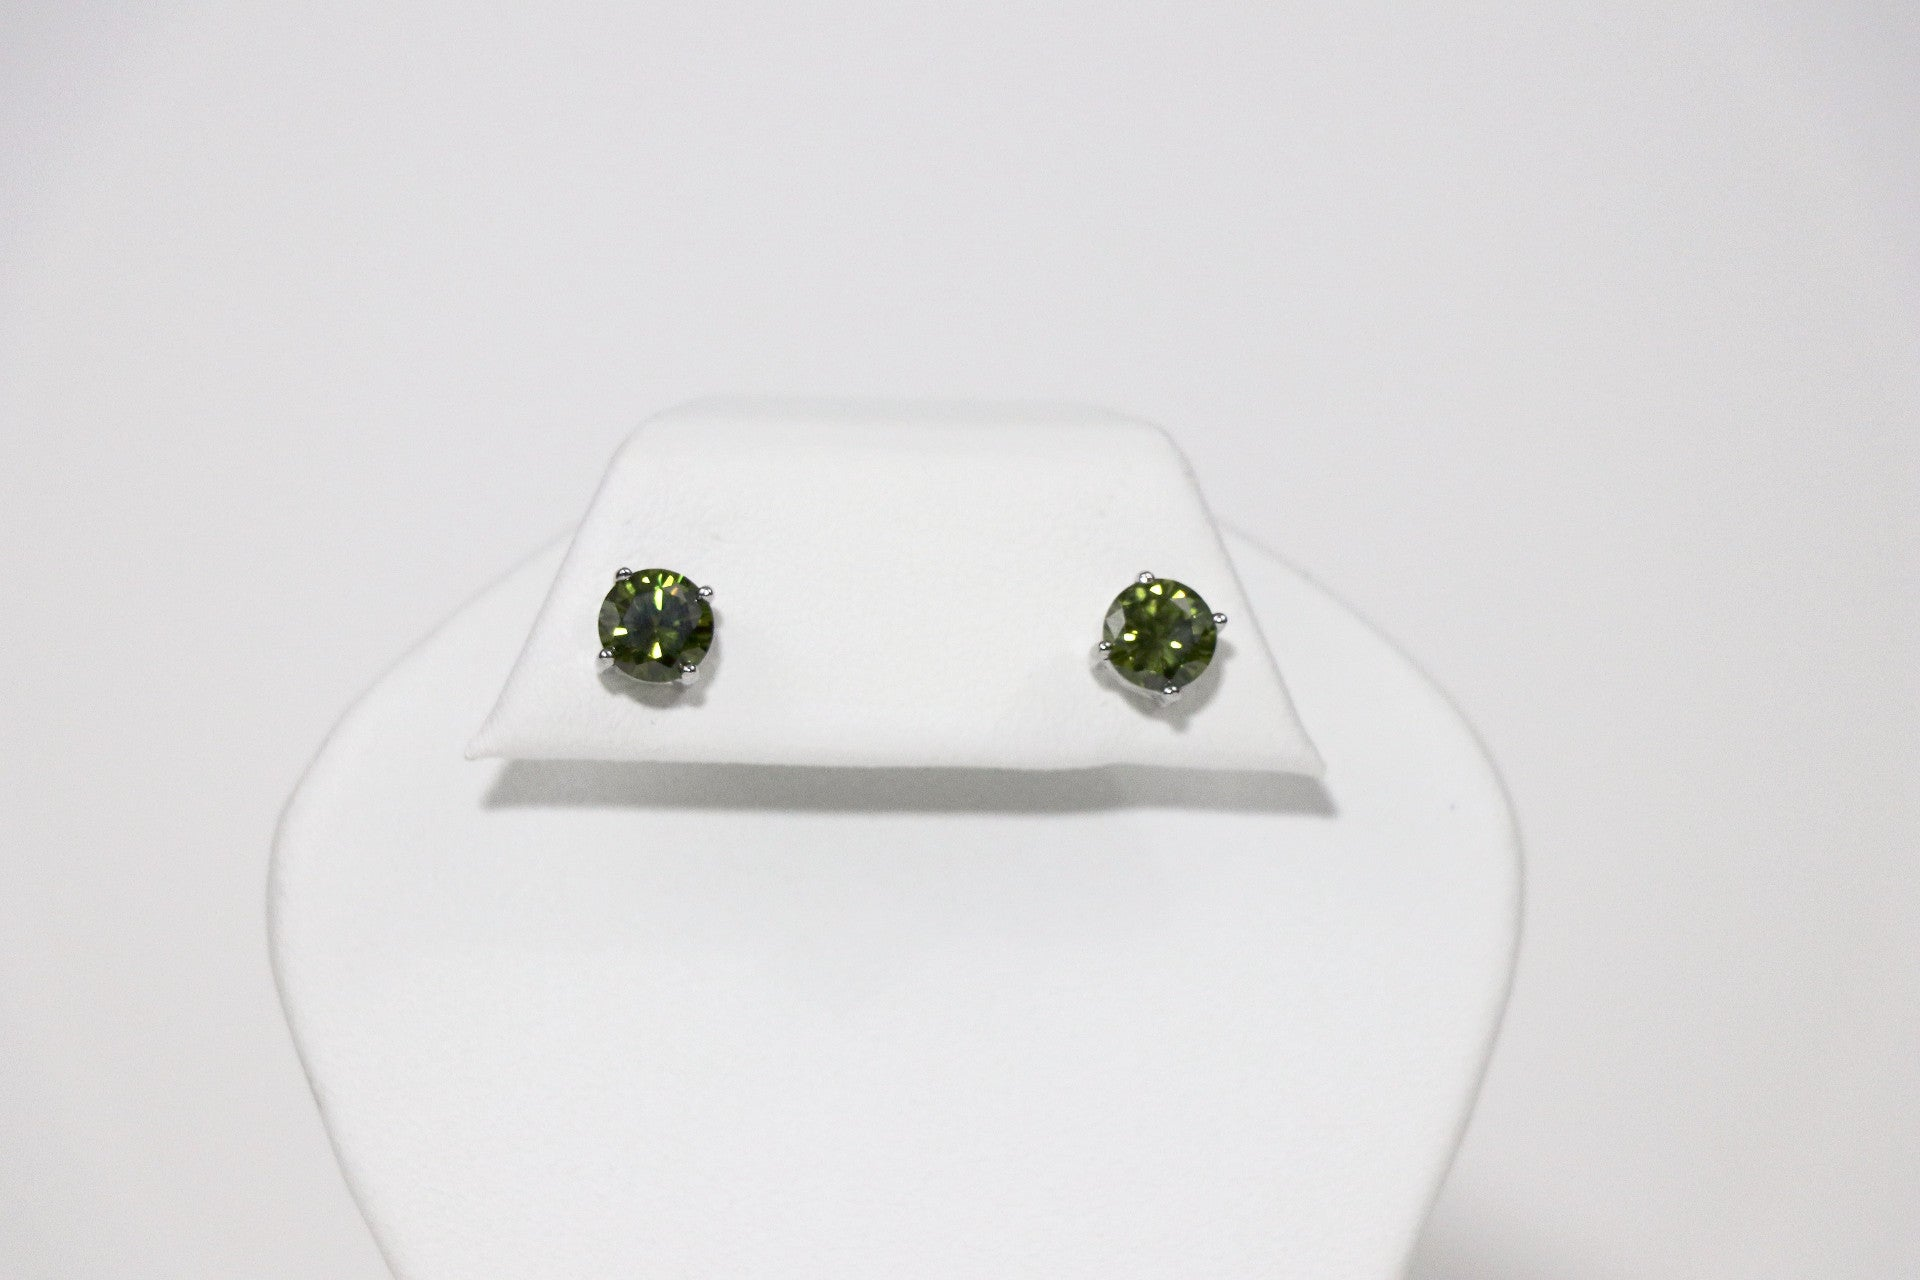 7mm Round Peridot Rhodium Cubic Zirconia Earrings